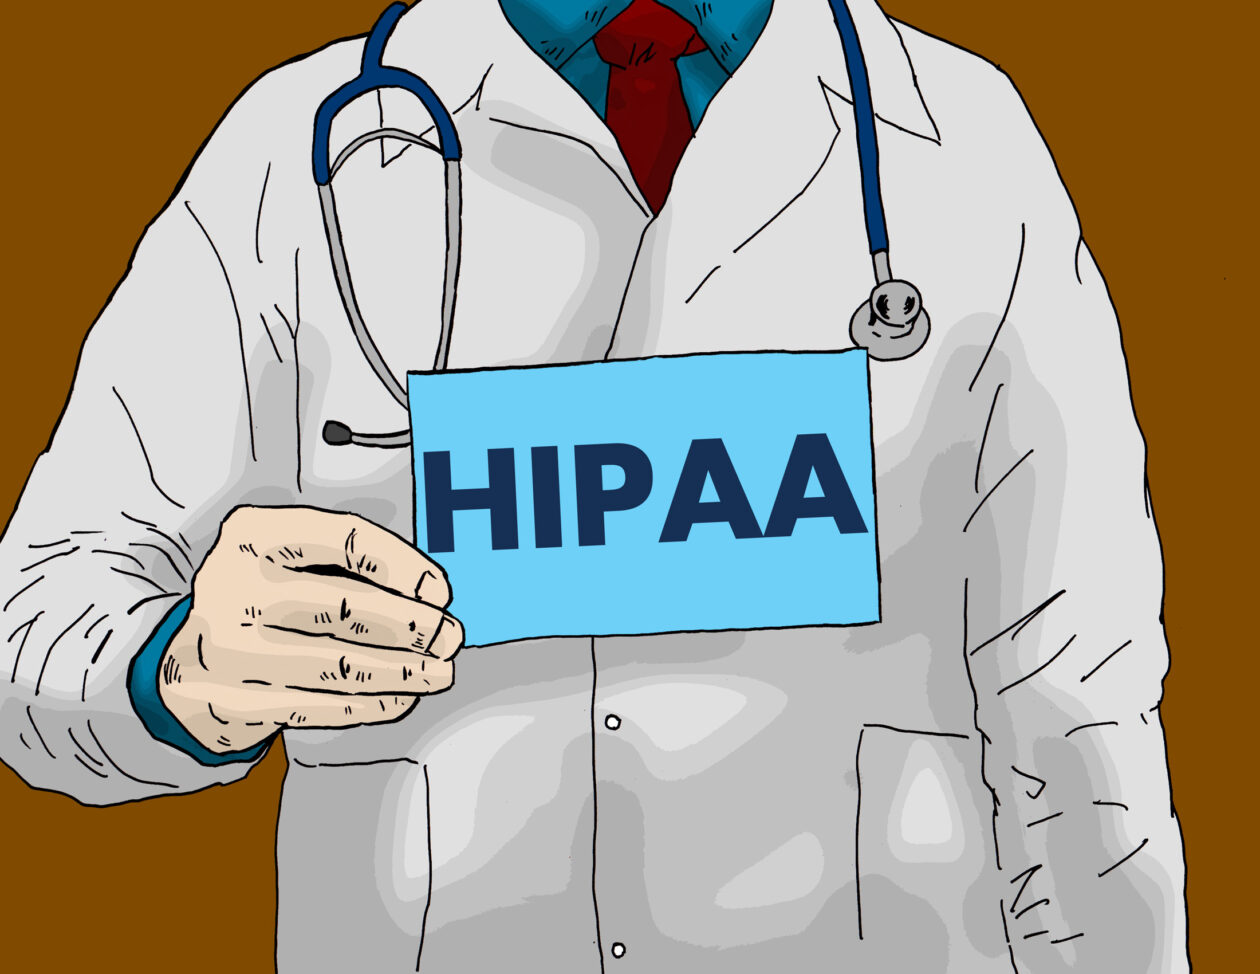 hipaa, outsourcing, advantages